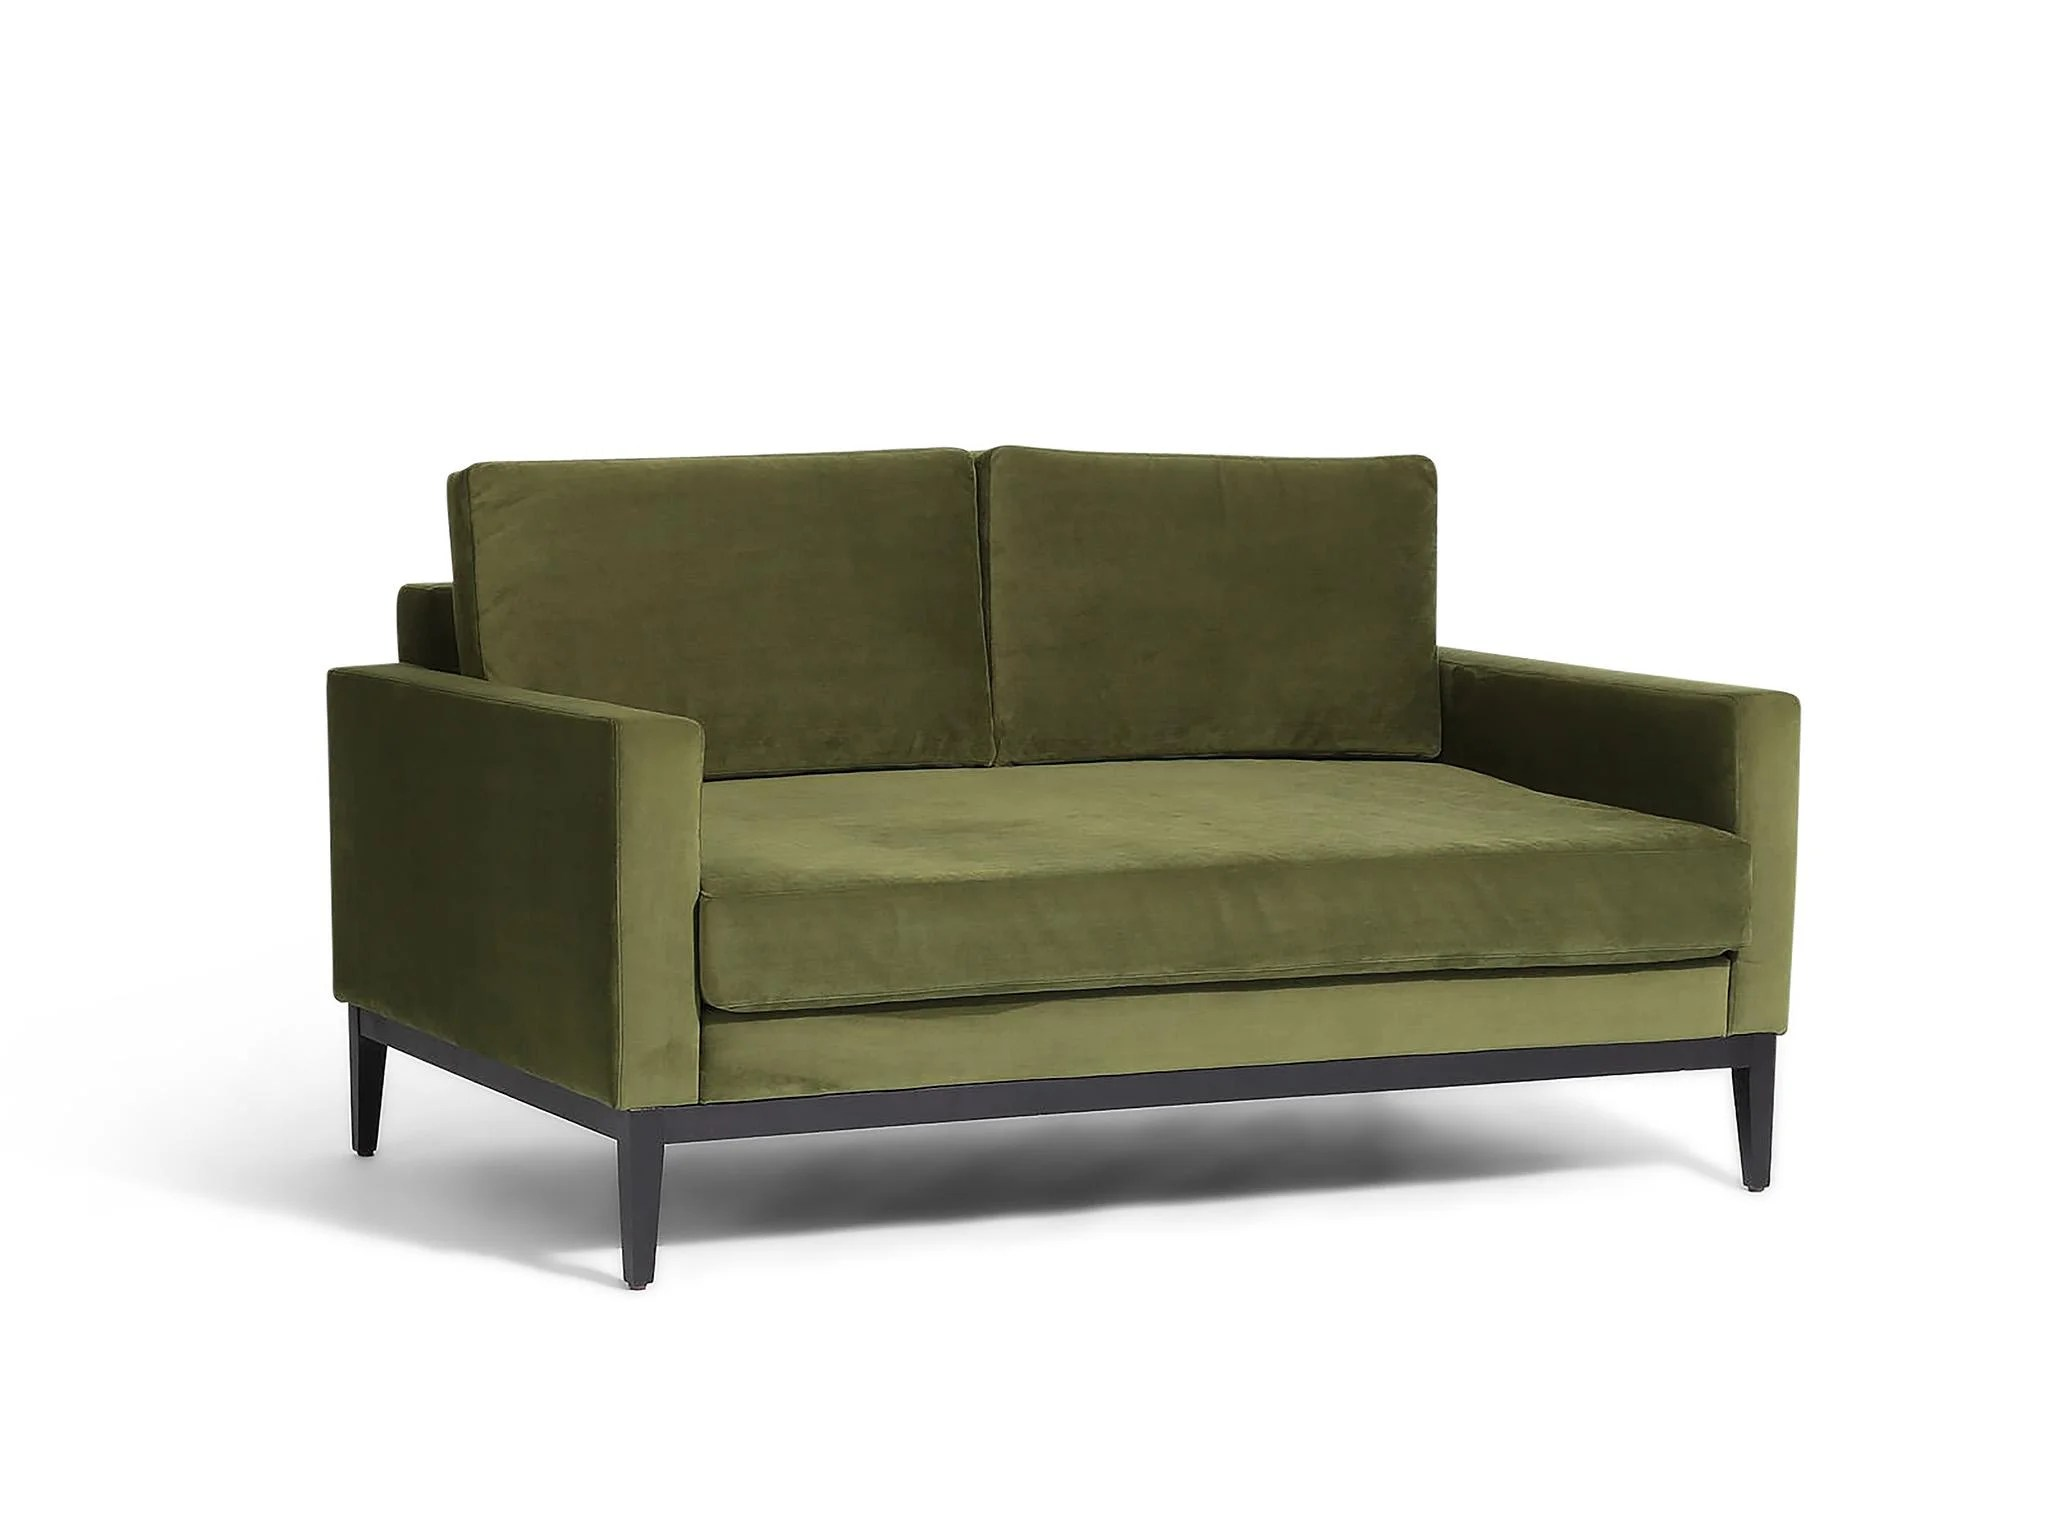 funky sofas ireland pipe sofa set chennai small uk taraba home review